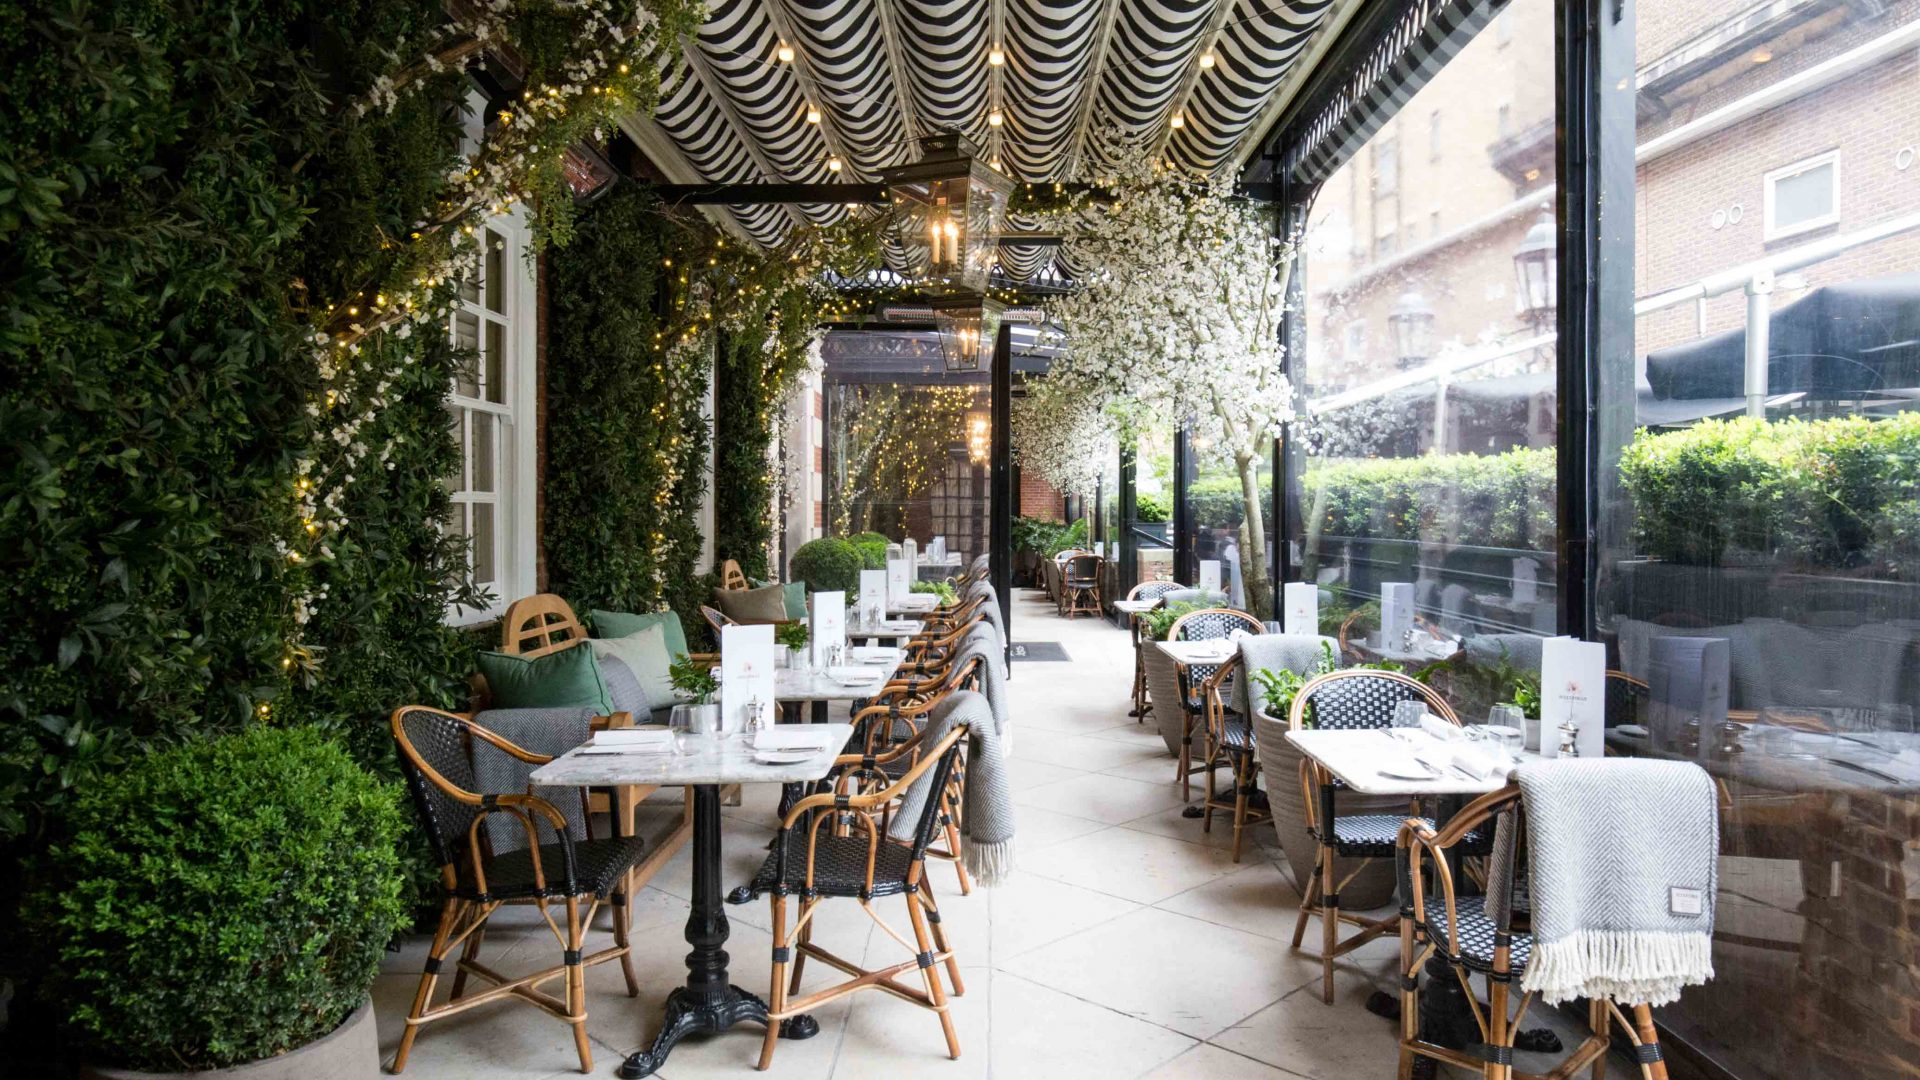 Dalloway terrace bar is an elegant poetic and for Restaurant with terrace